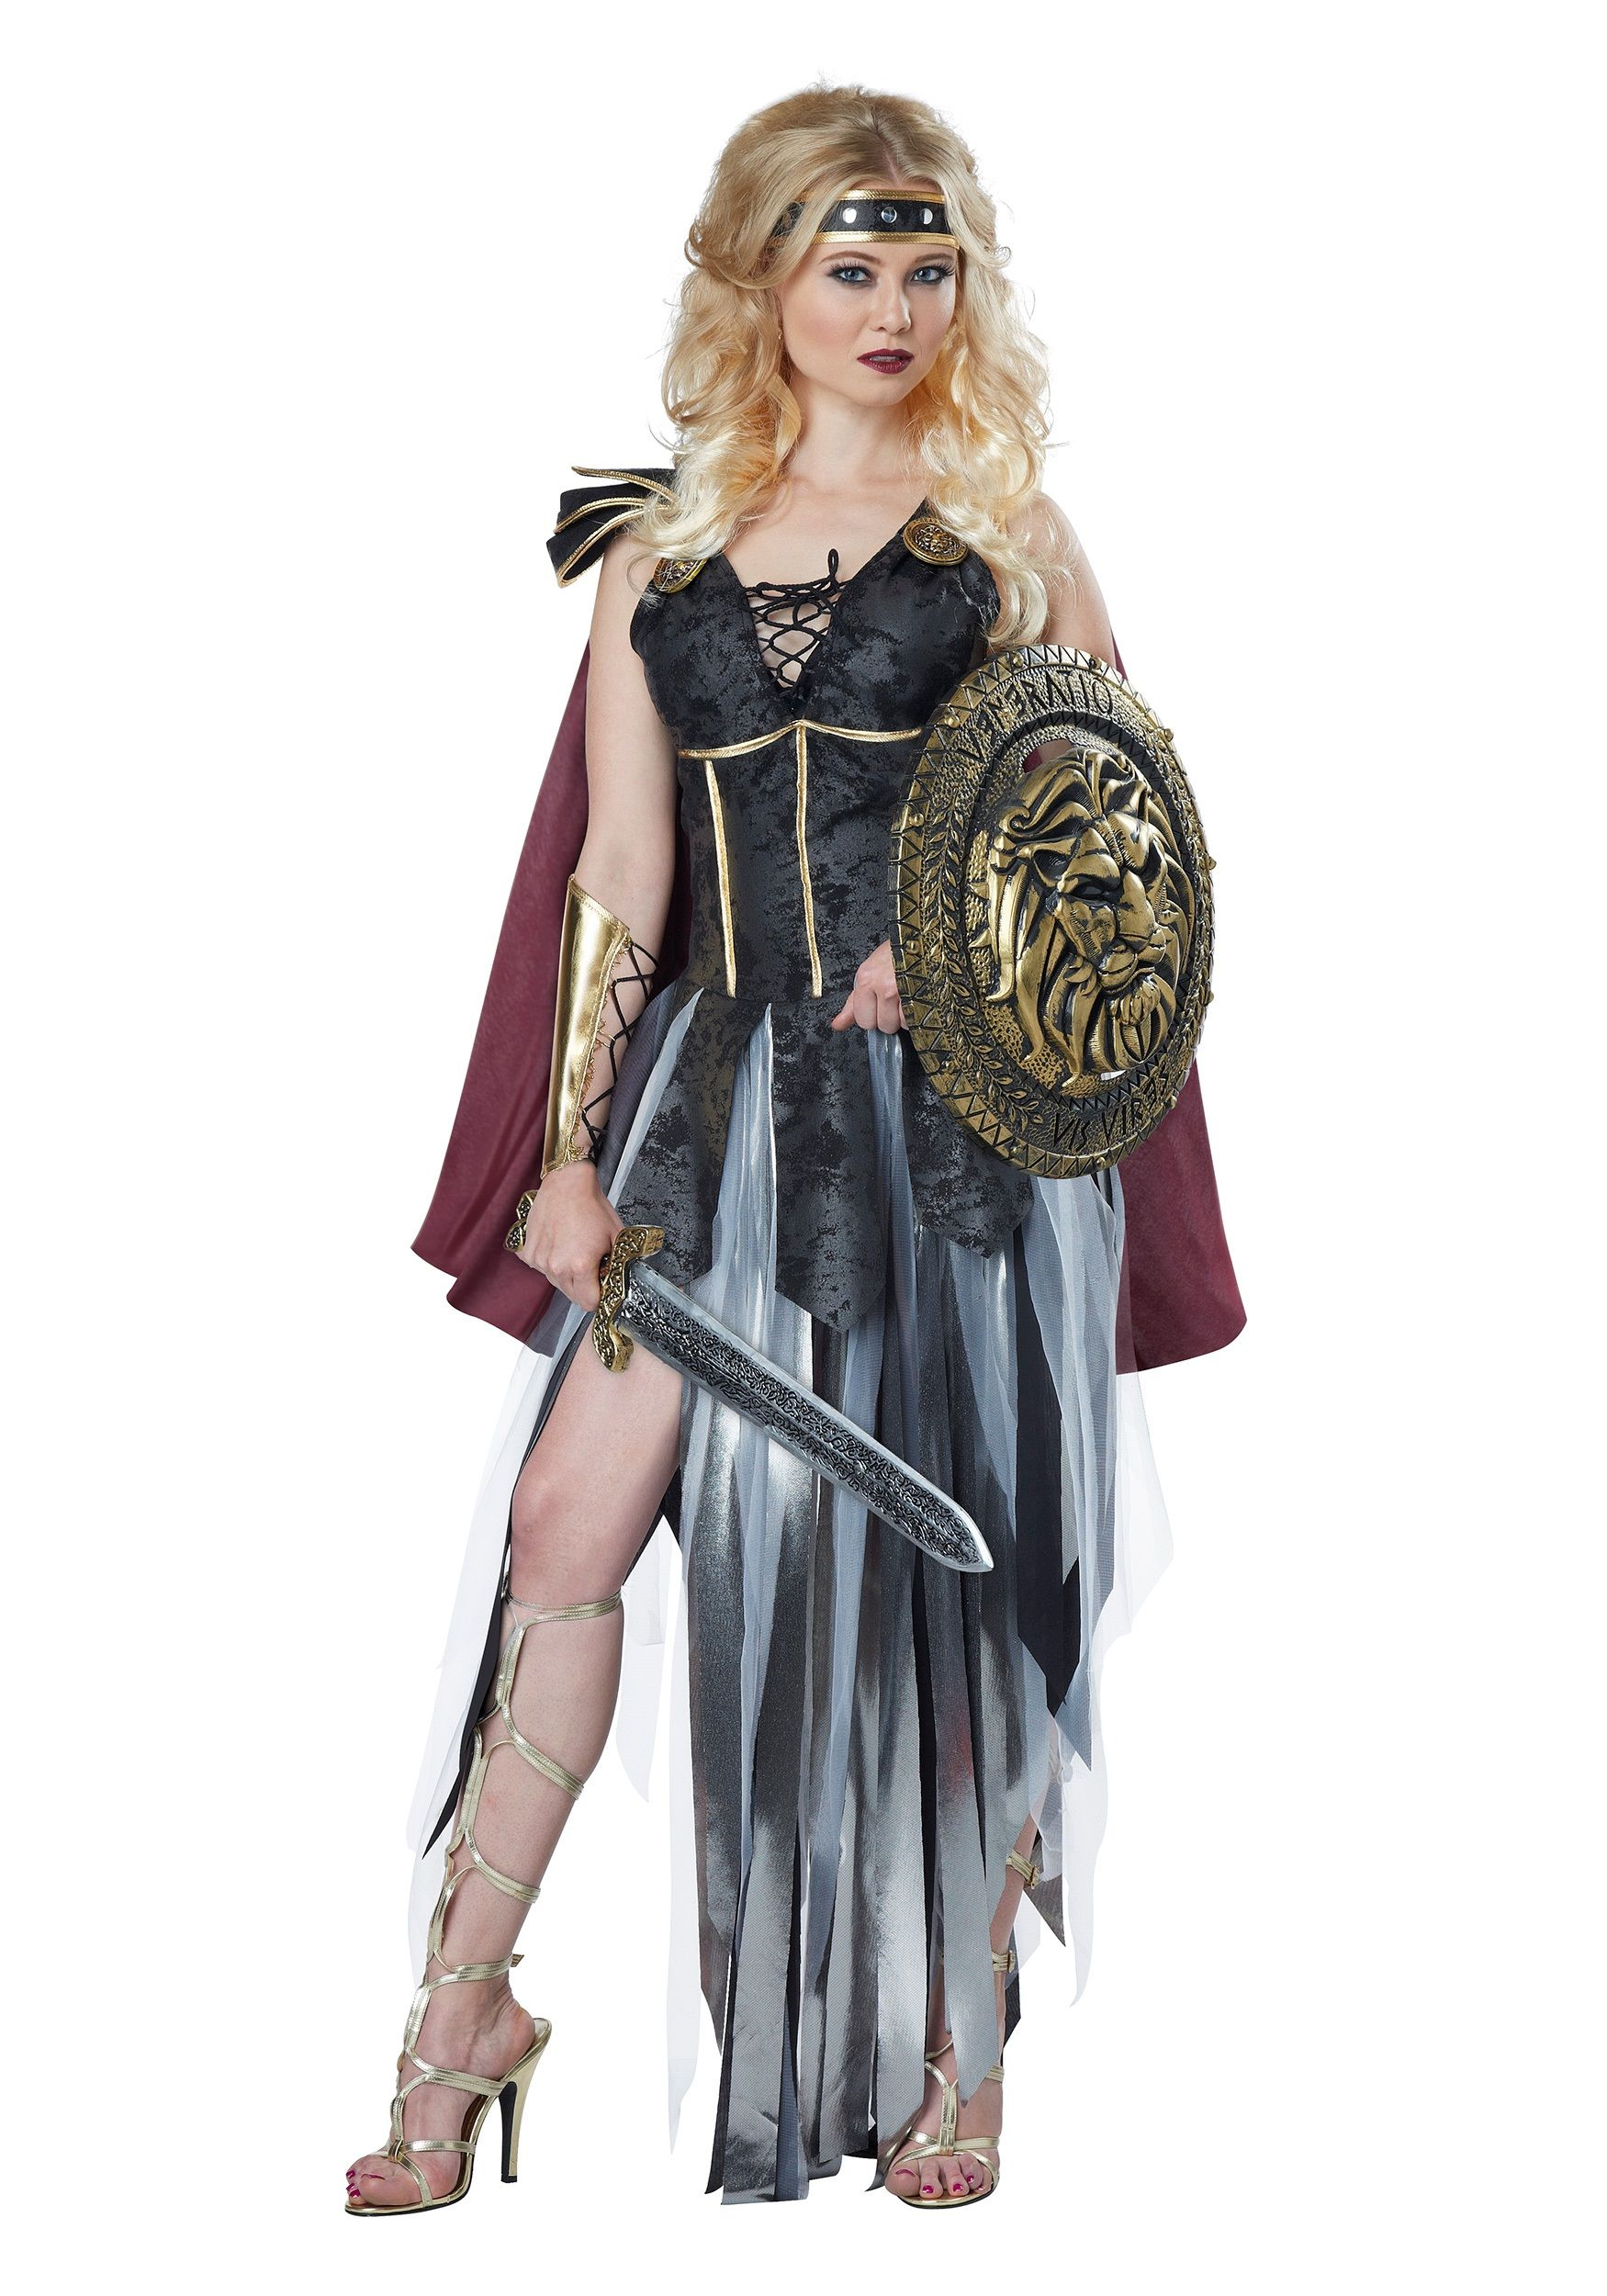 c413d09cec Plus Size Women's Costumes - Plus Size Halloween Costumes for Women ...